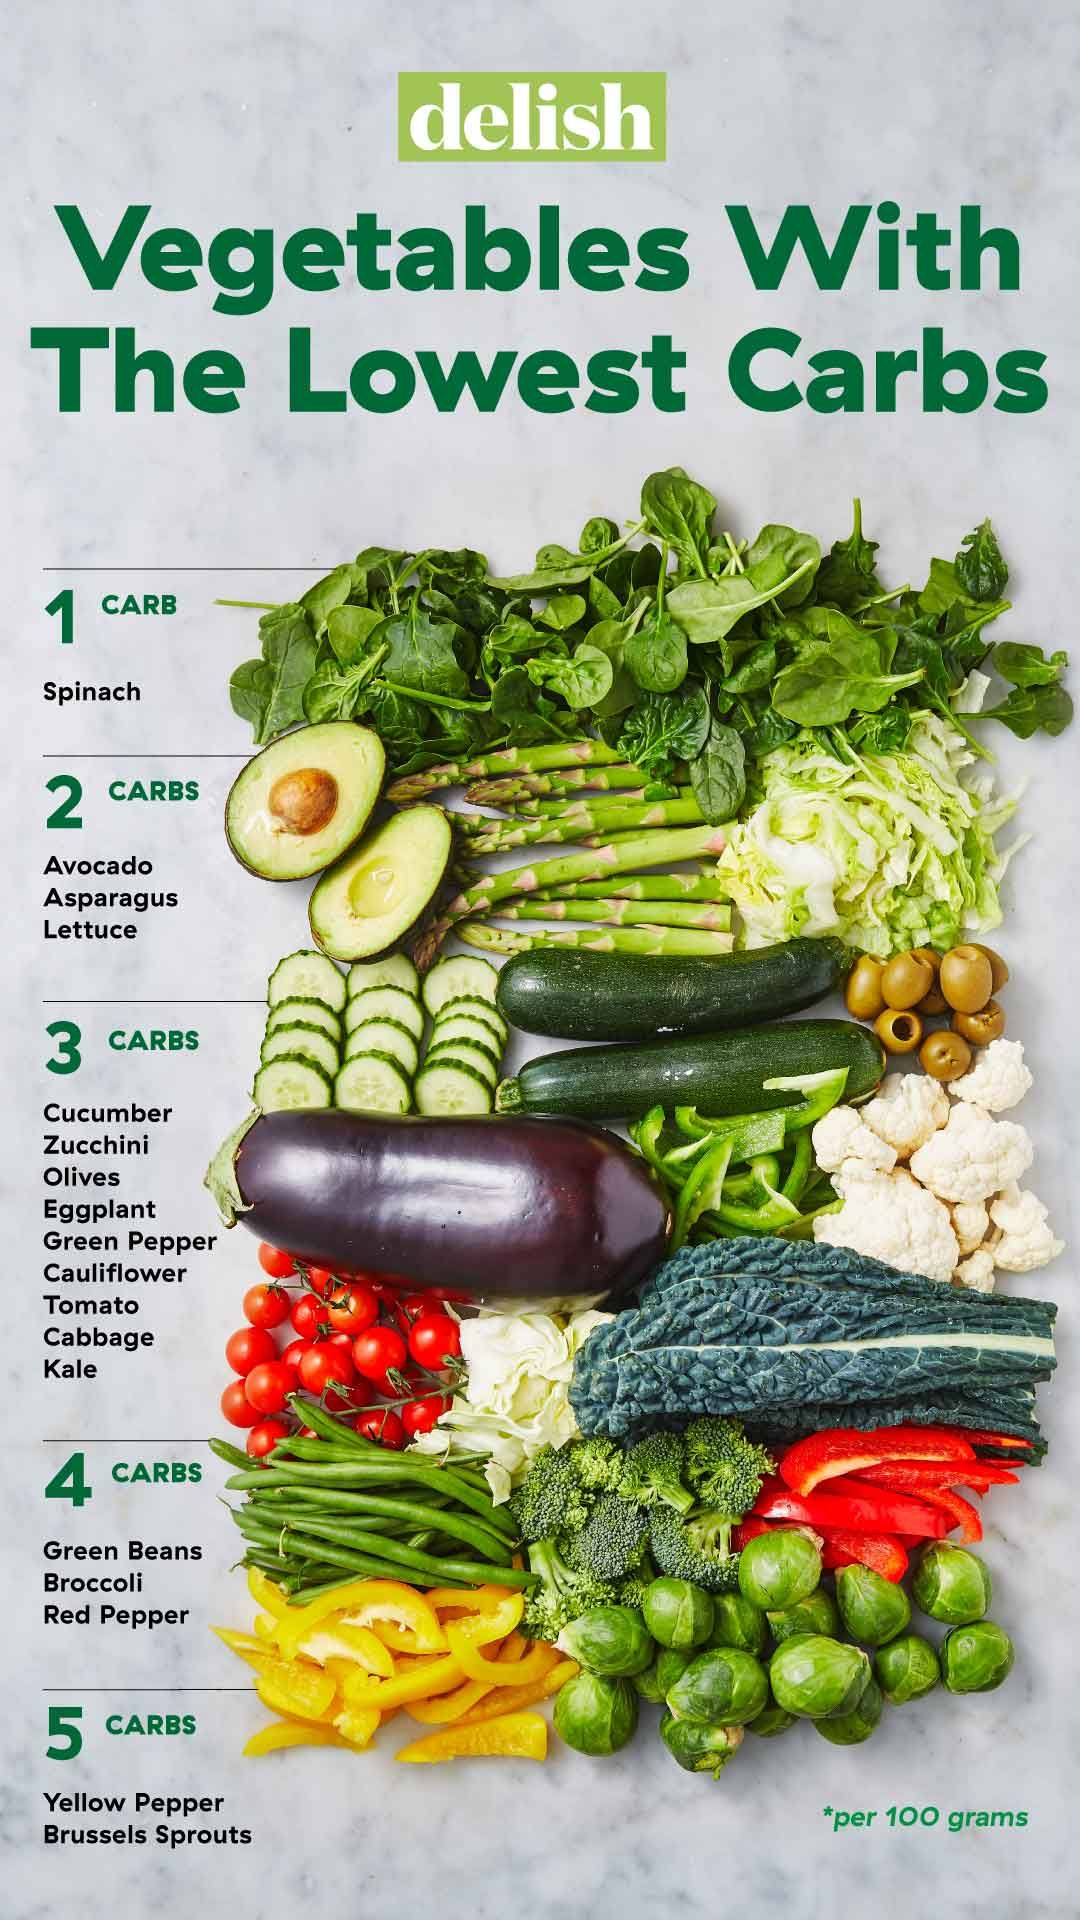 Vegetables With The Lowest Carbs #lowcarbveggies